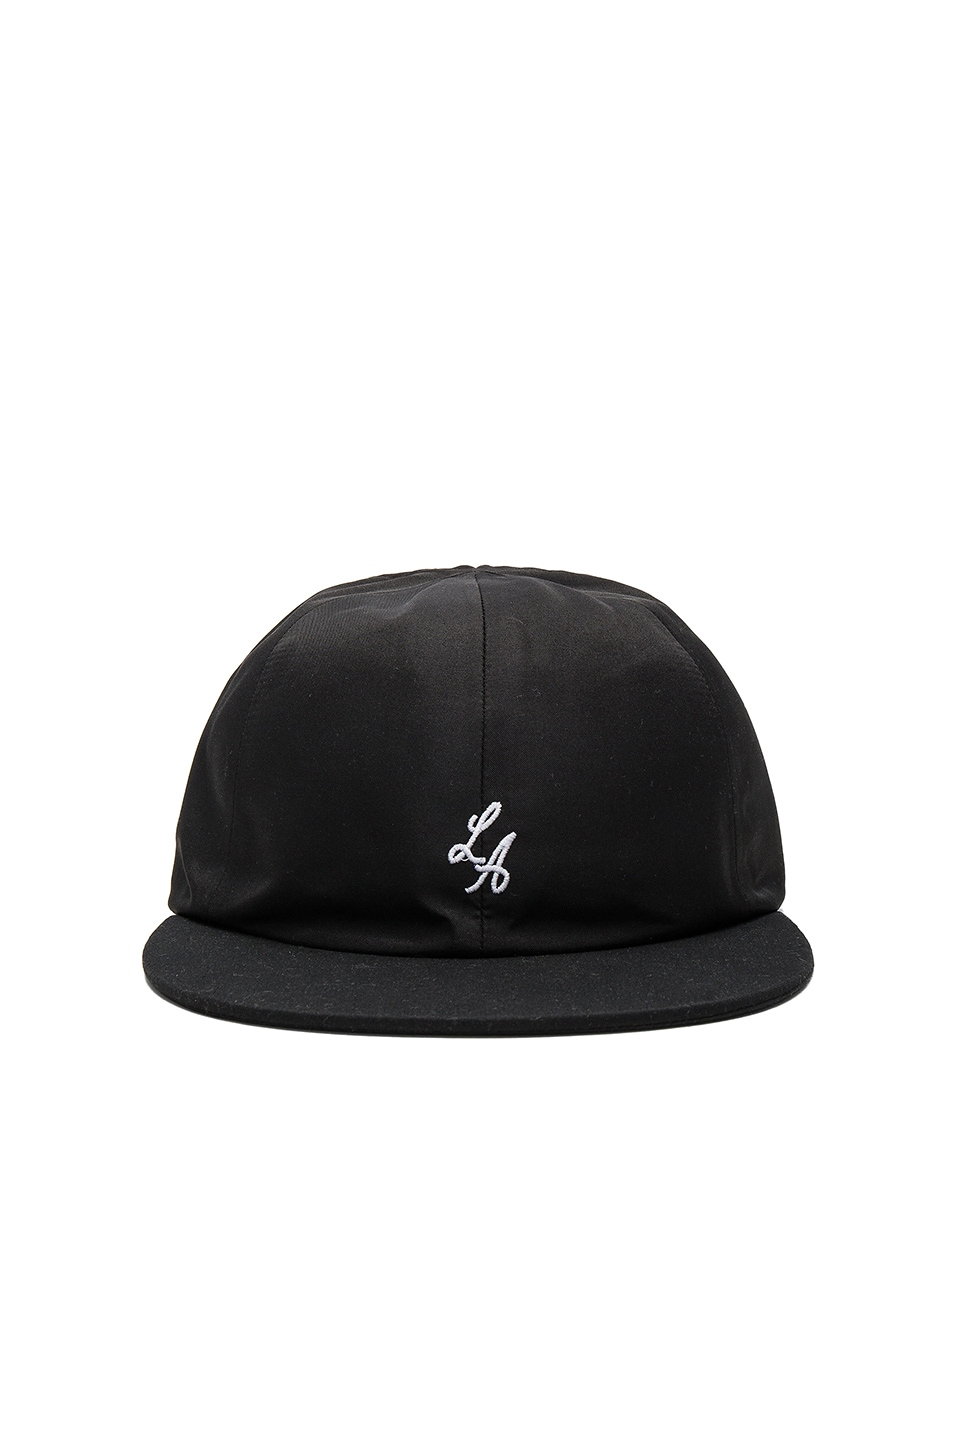 Lower LA Script Hat by Stampd